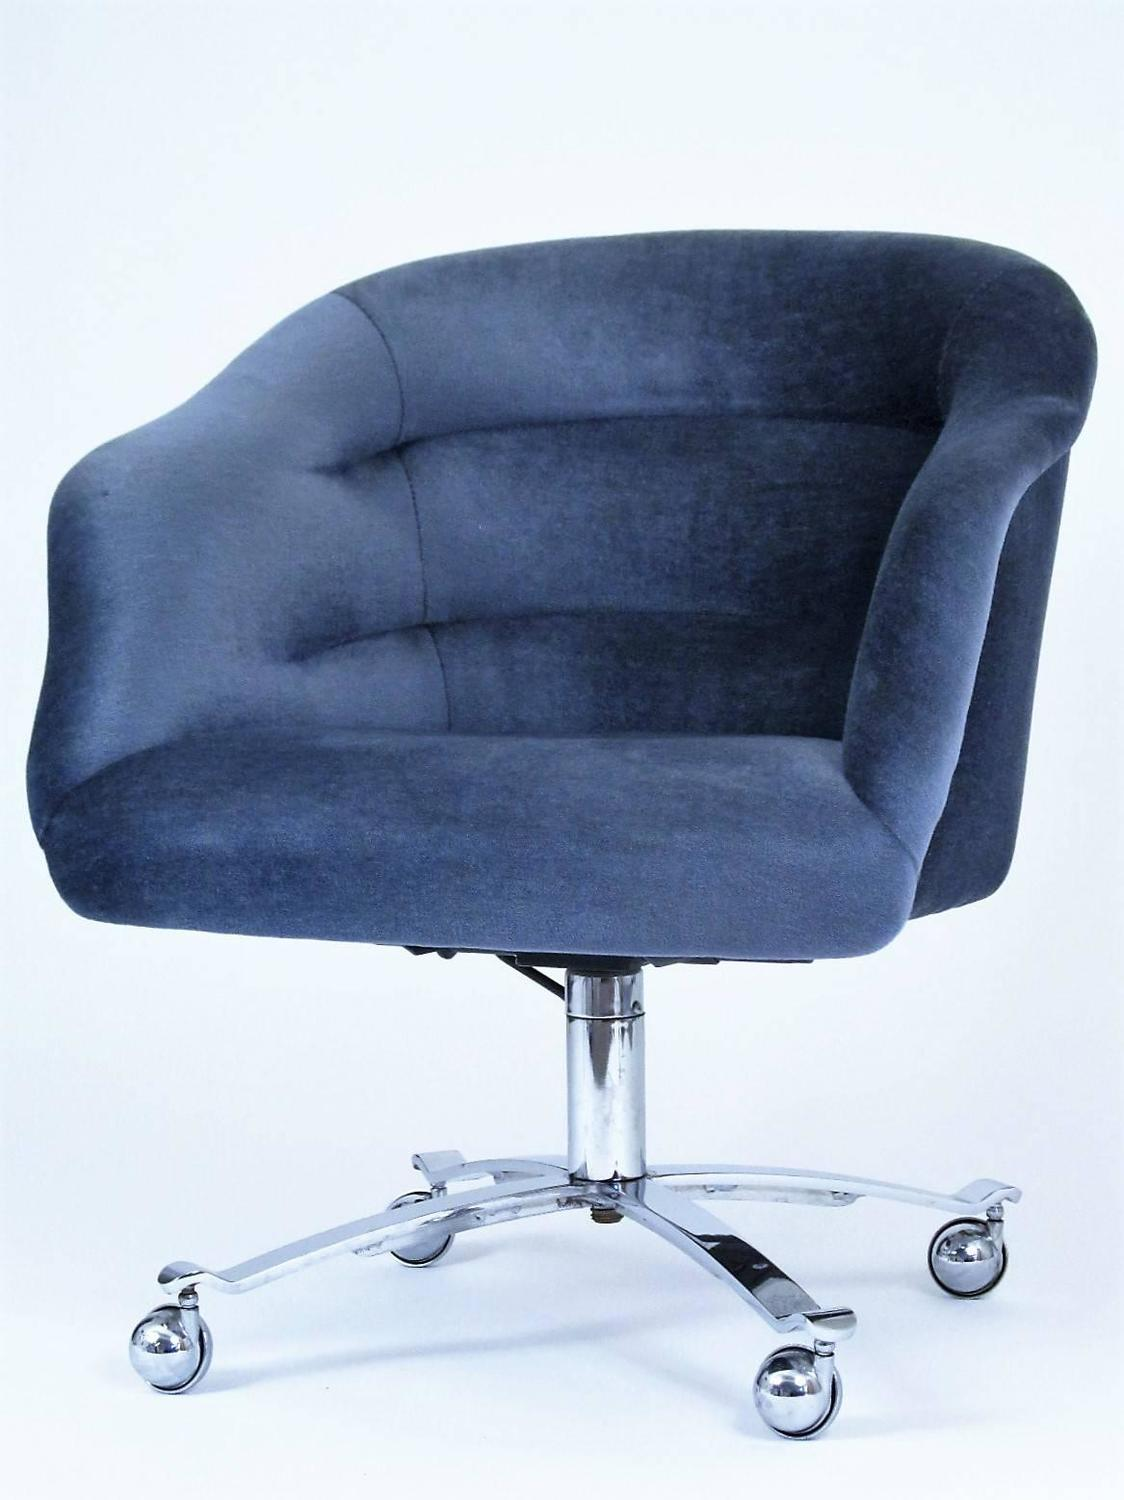 Plush Office Chair Pair Of Plush Mohair Upholstered Chairs Designed By Ward